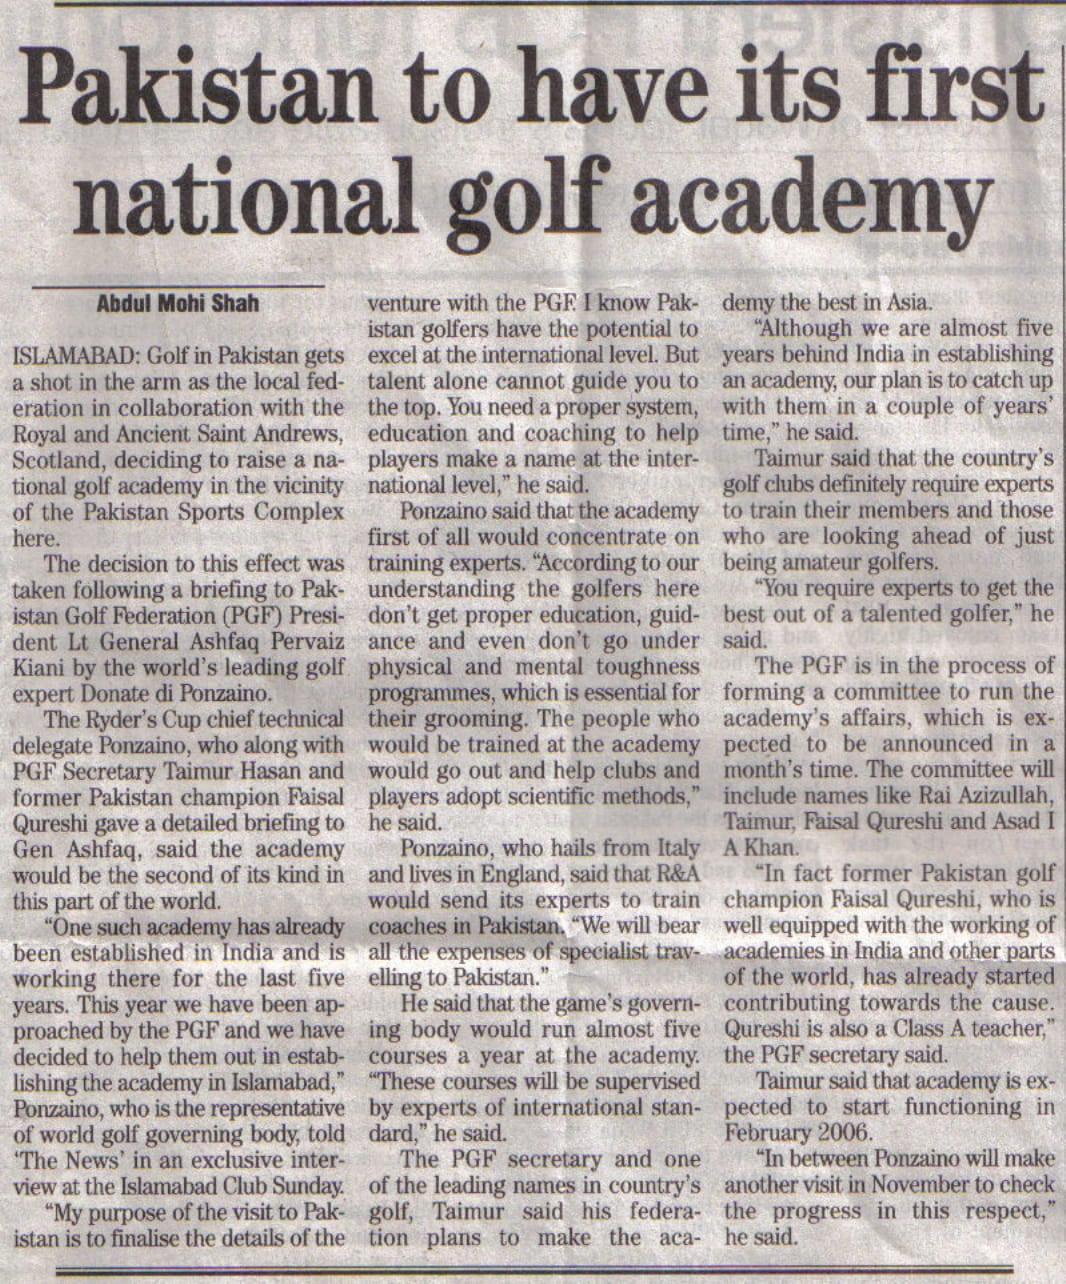 Pakistan to have its first national golf academy